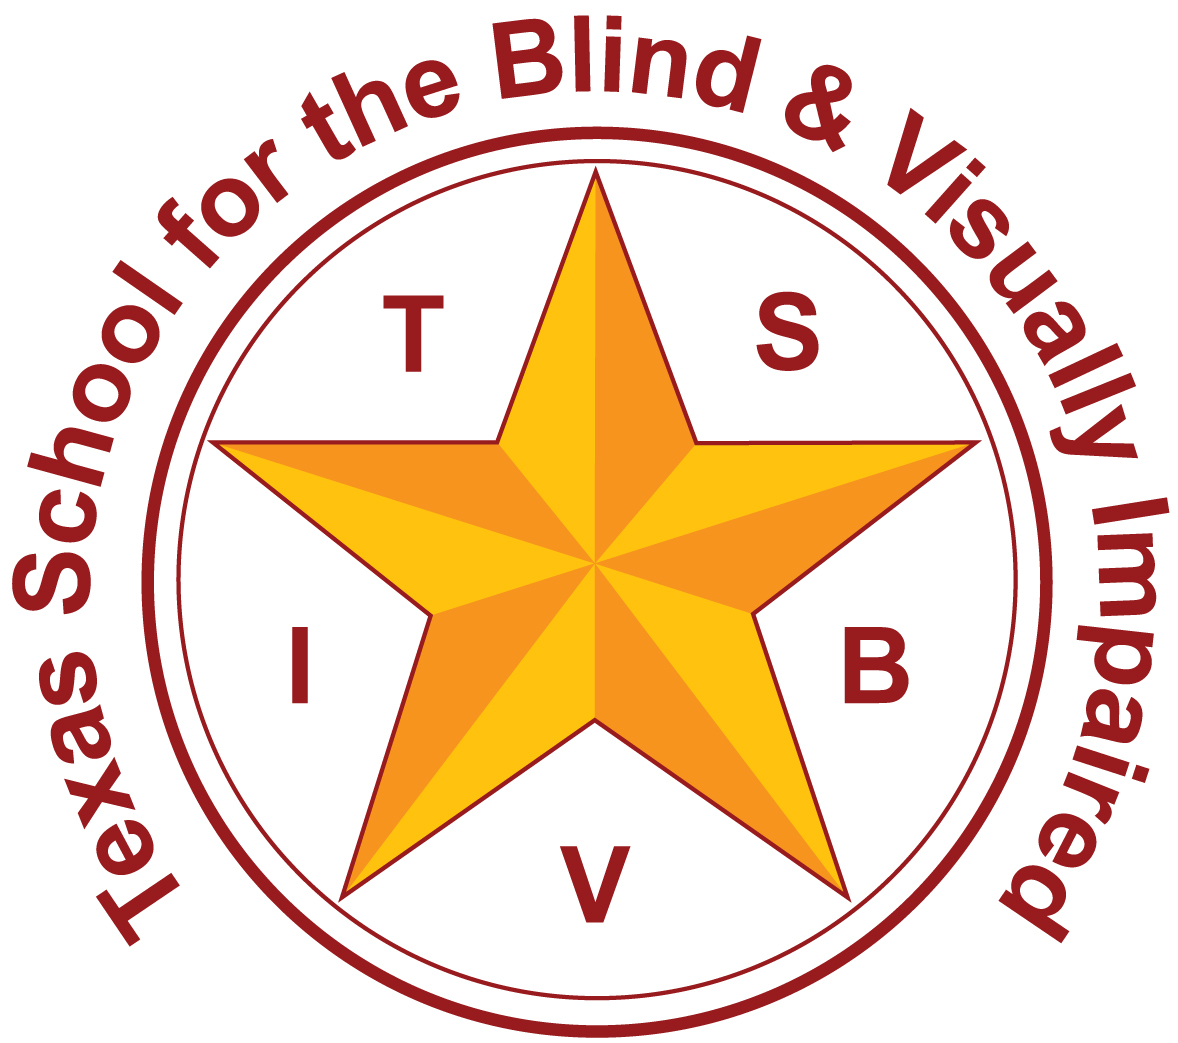 Texas School for the Blind and Visually Impaired